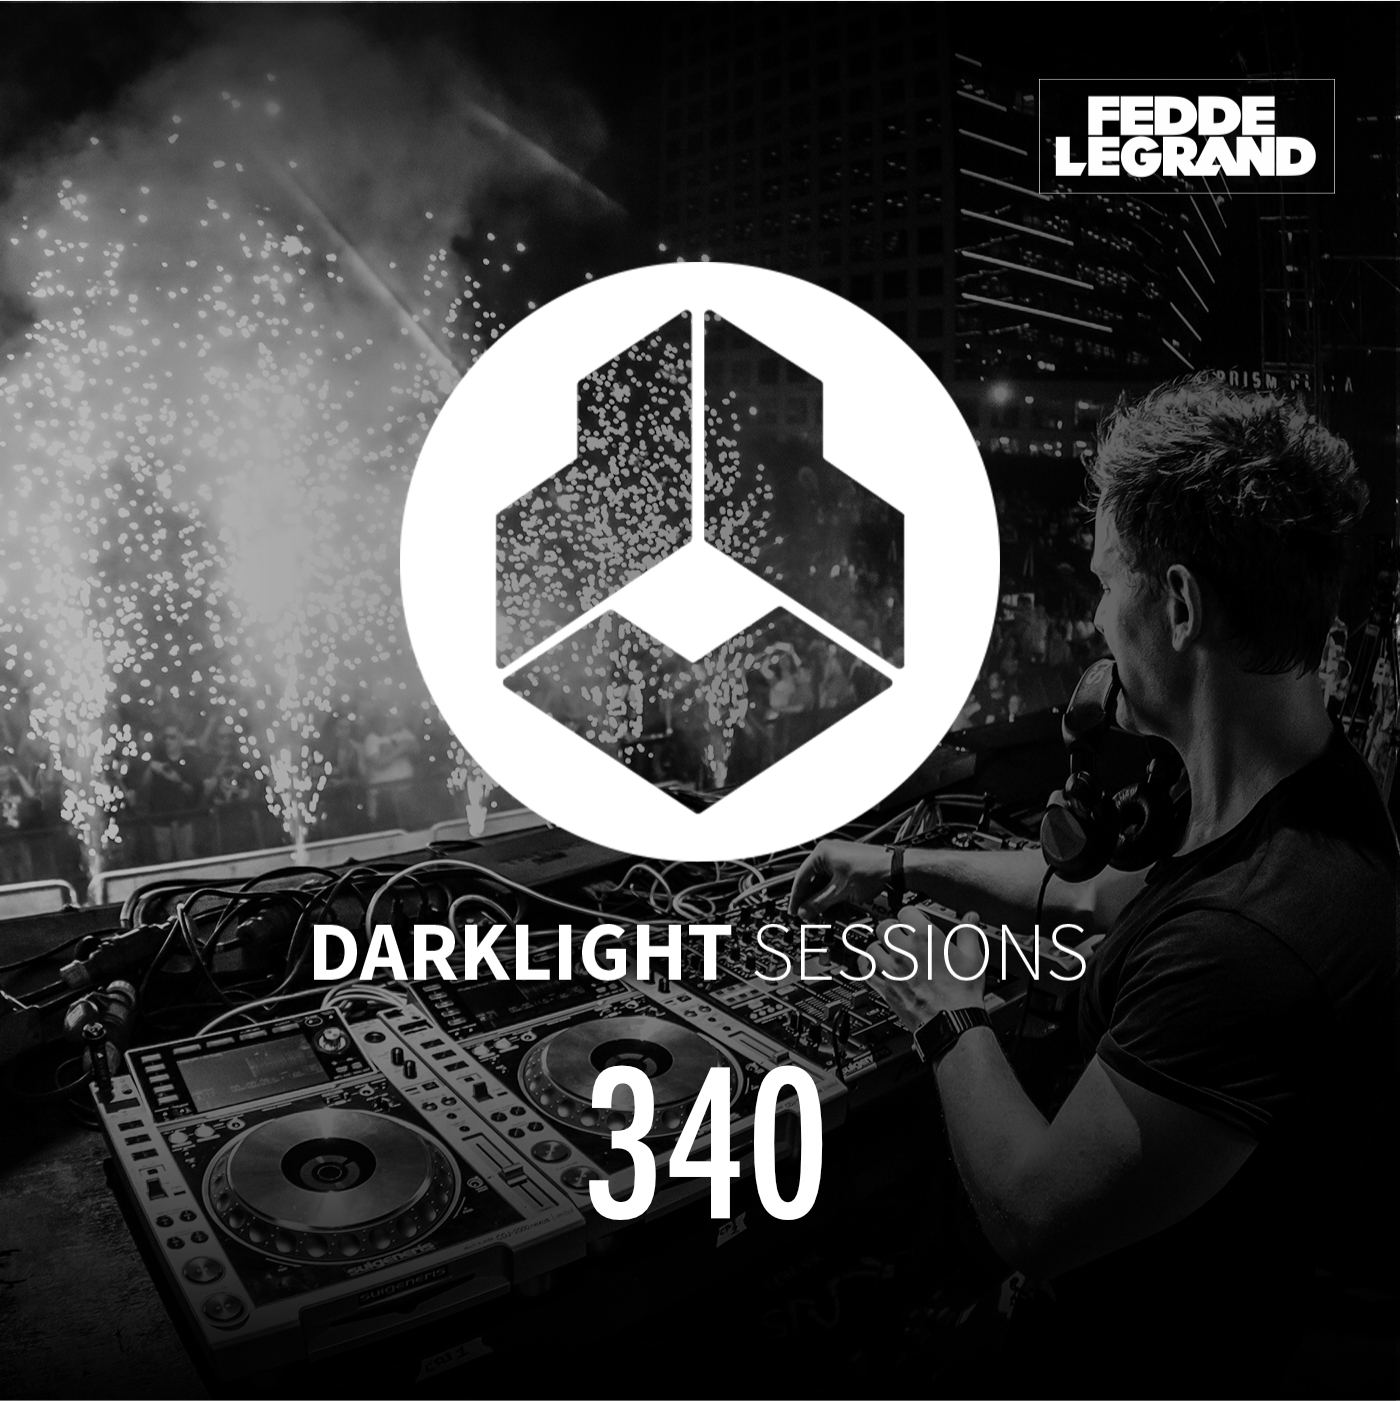 Darklight Sessions 340